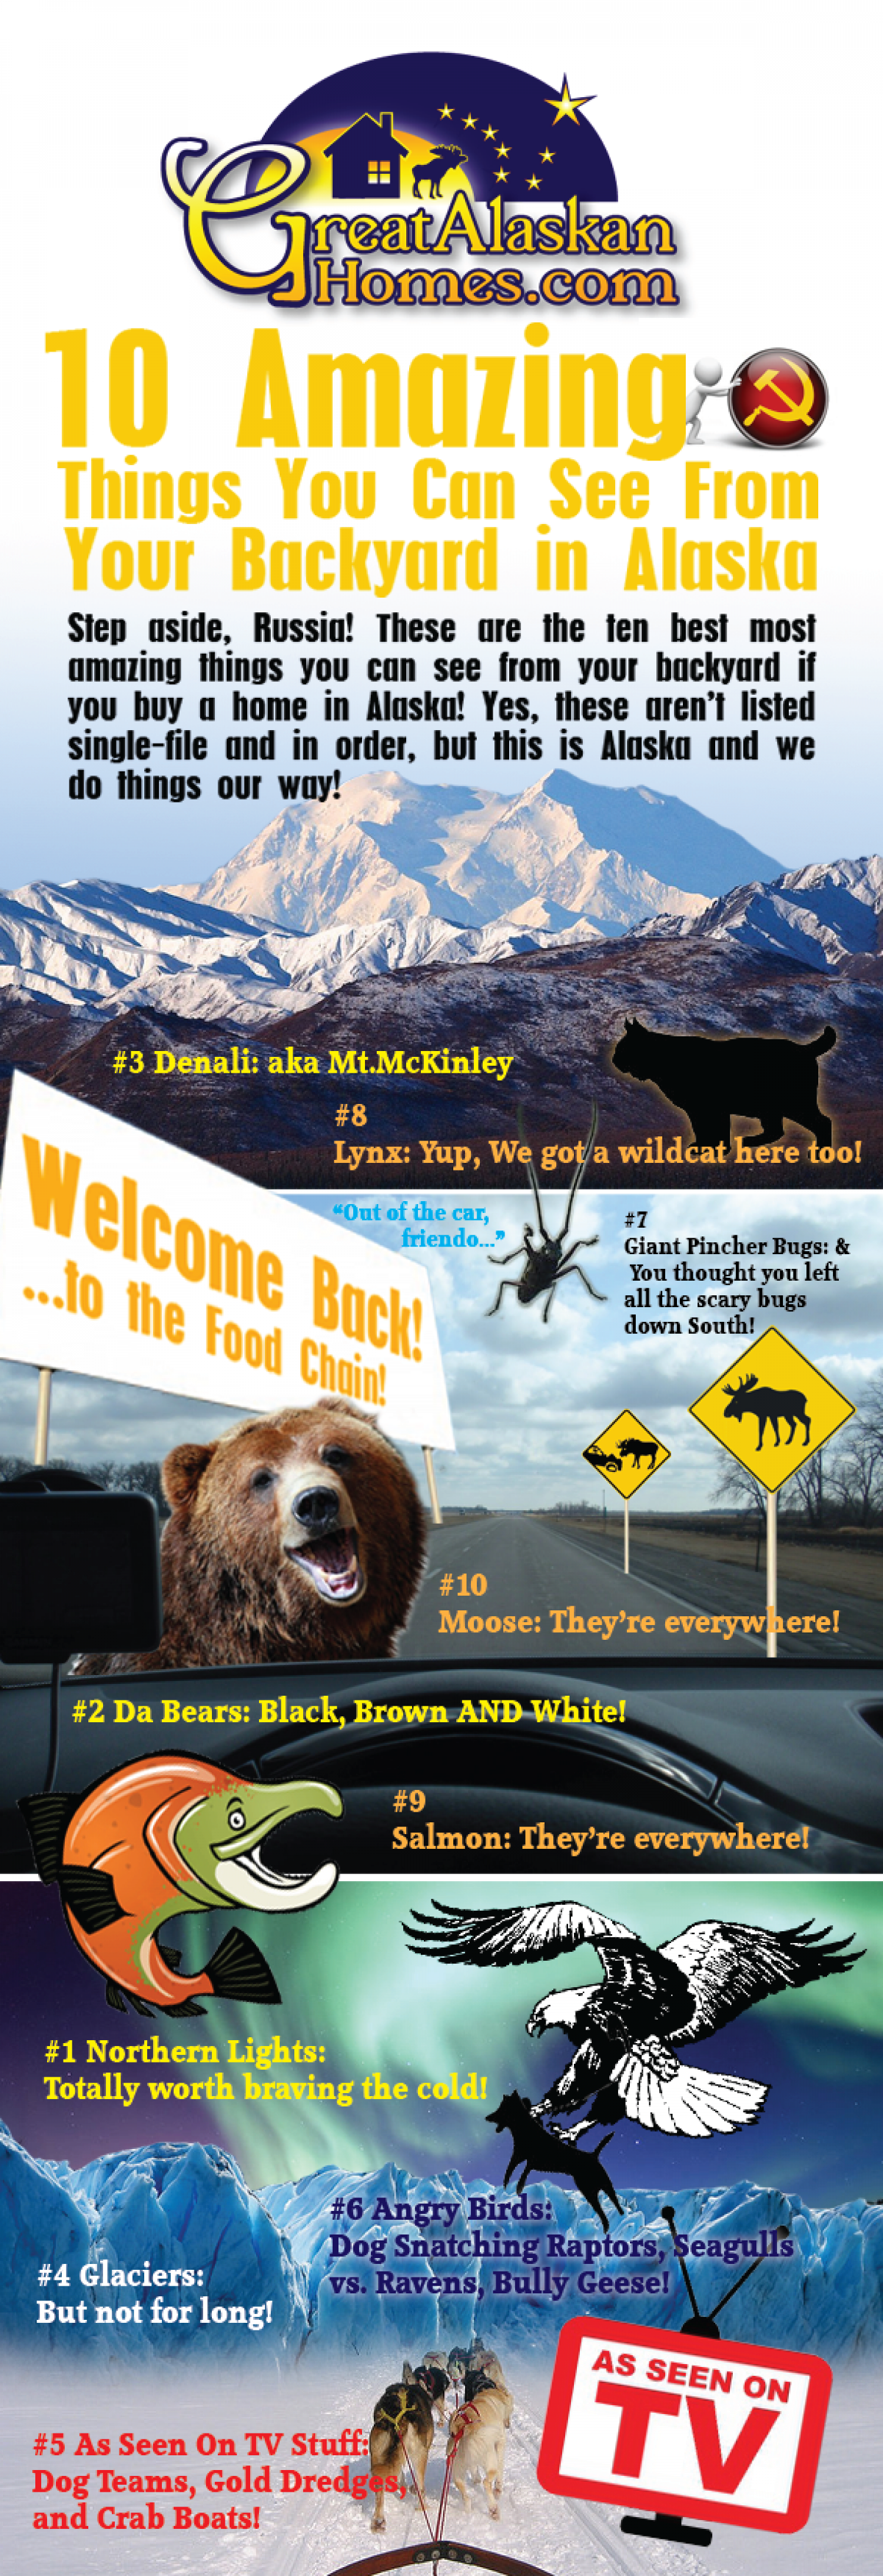 10 Amazing Things You Can See From Your Backyard in Alaska Infographic